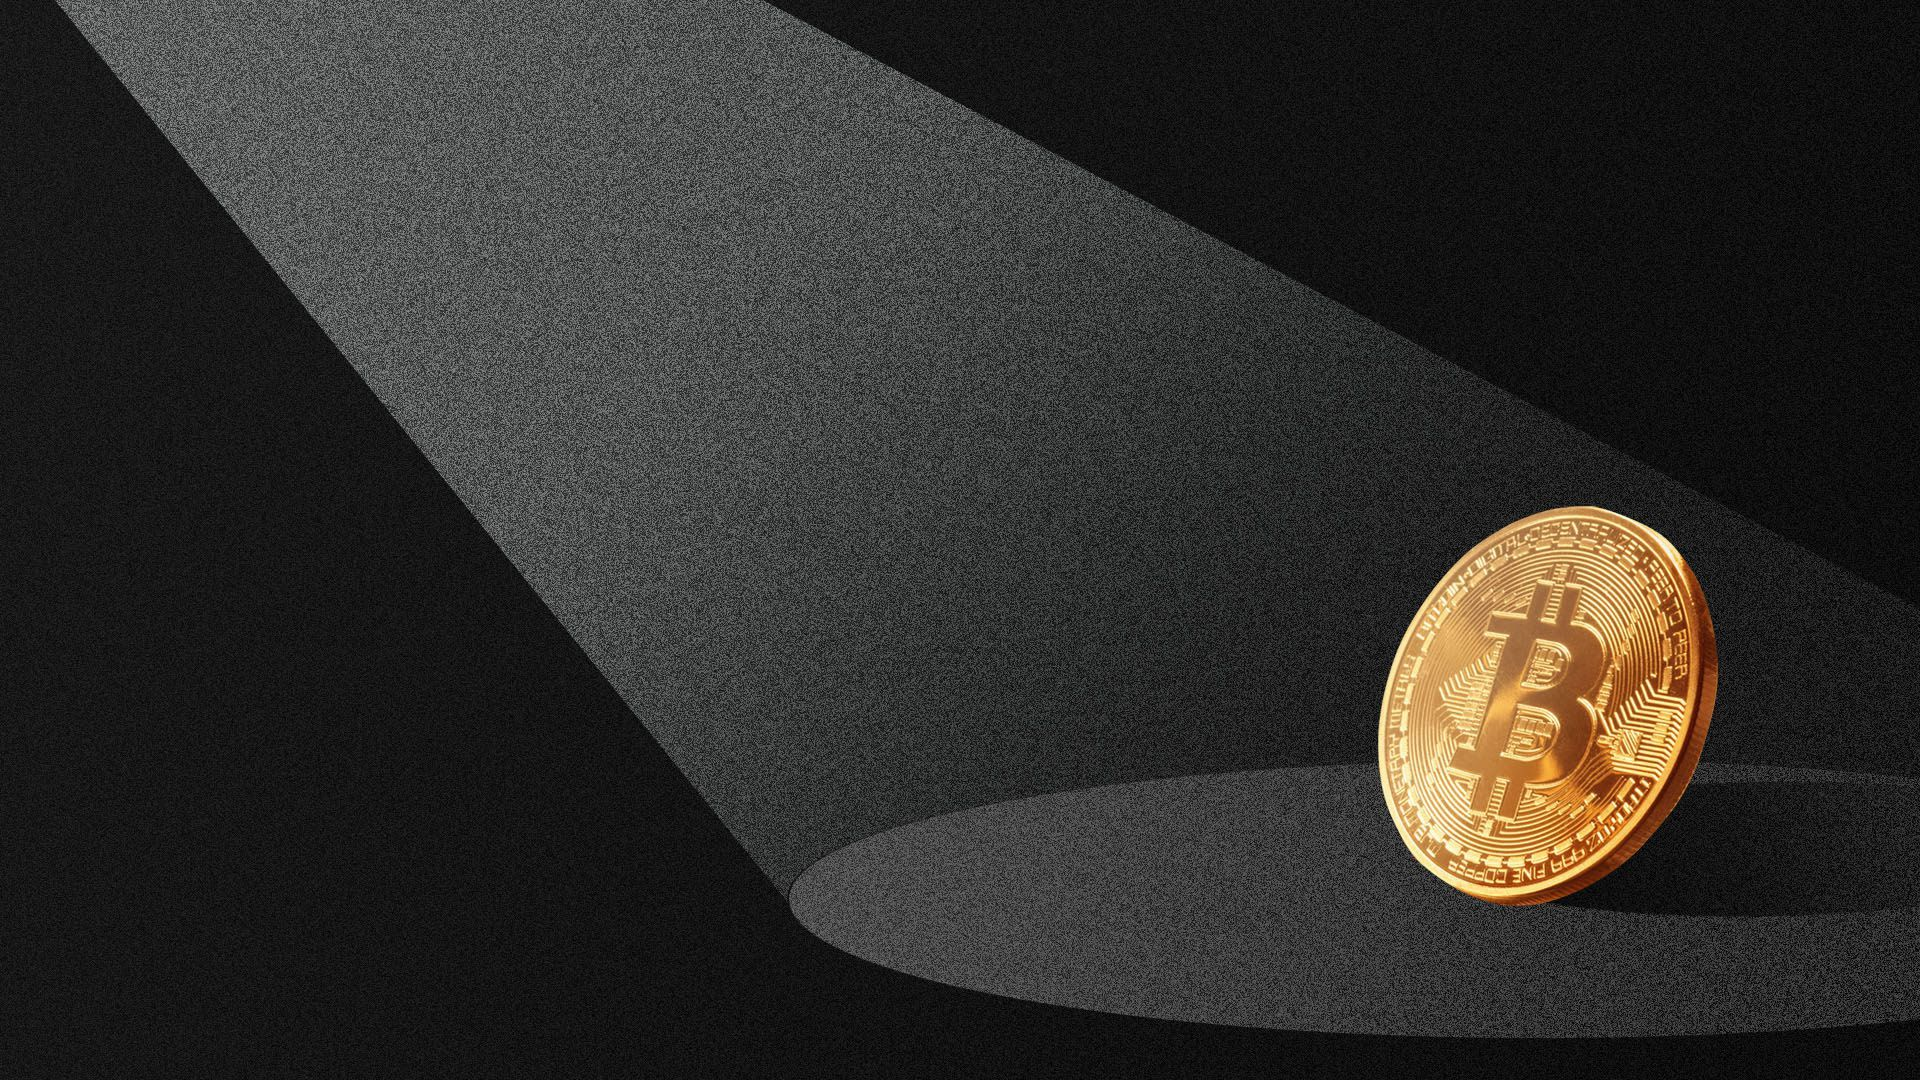 Cryptocurrency in the spotlight